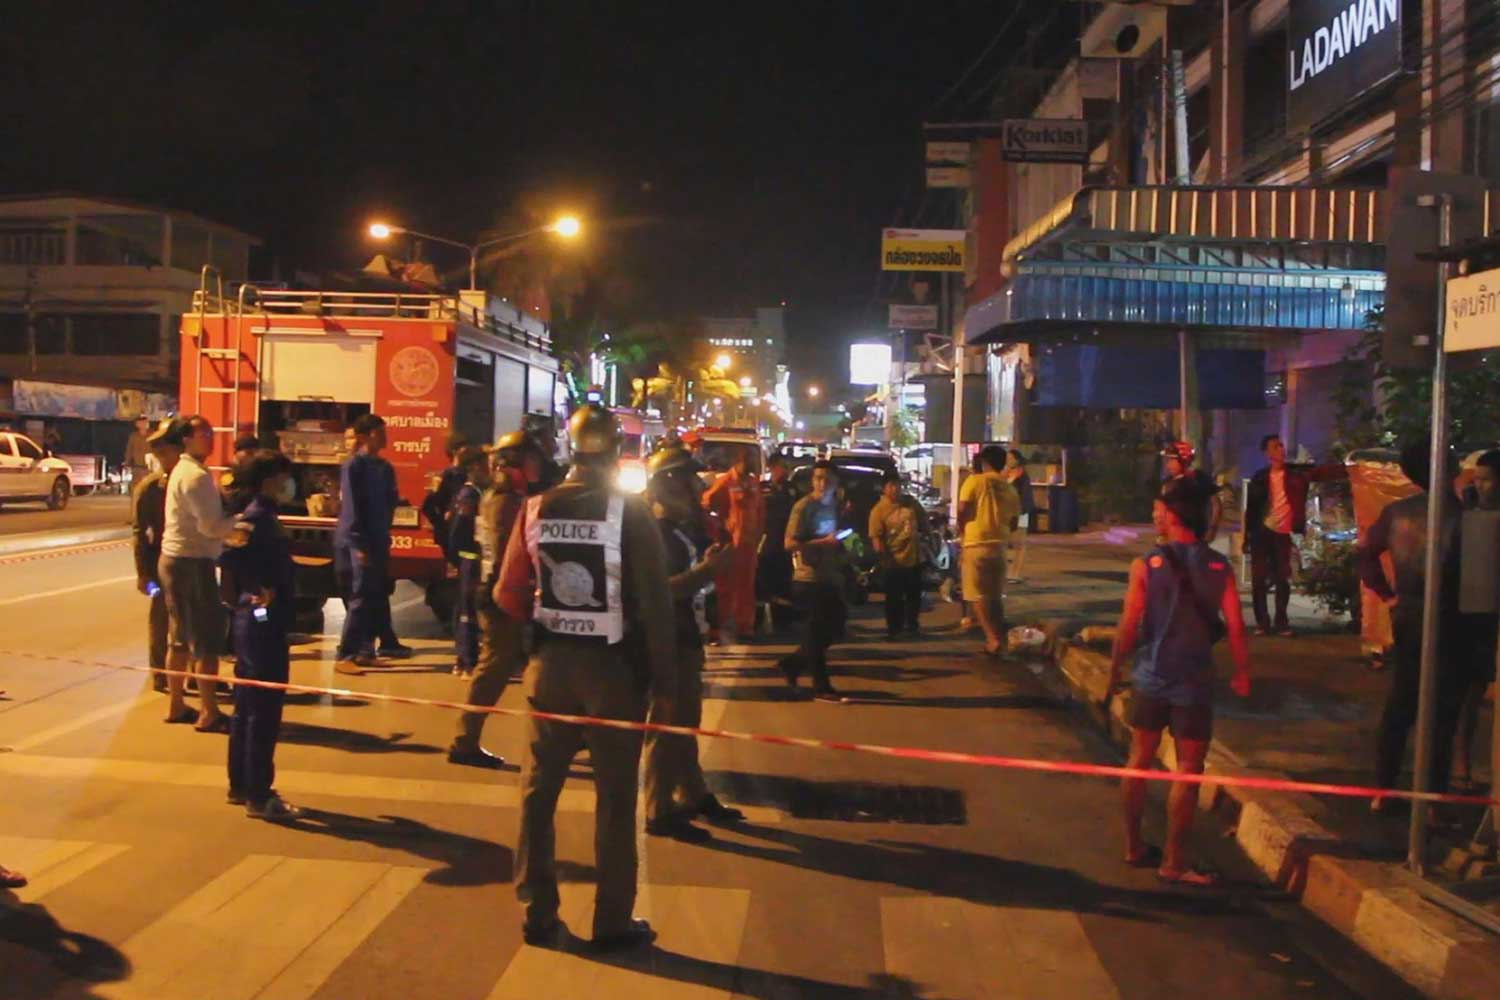 Police and rescue volunteers gather in front of a tutoring school in Muang district of Ratchaburi on Monday night as a woman employee threatens jump to her death. She was assisted to safety. (Photo taken by Saichon Srinuanchan)